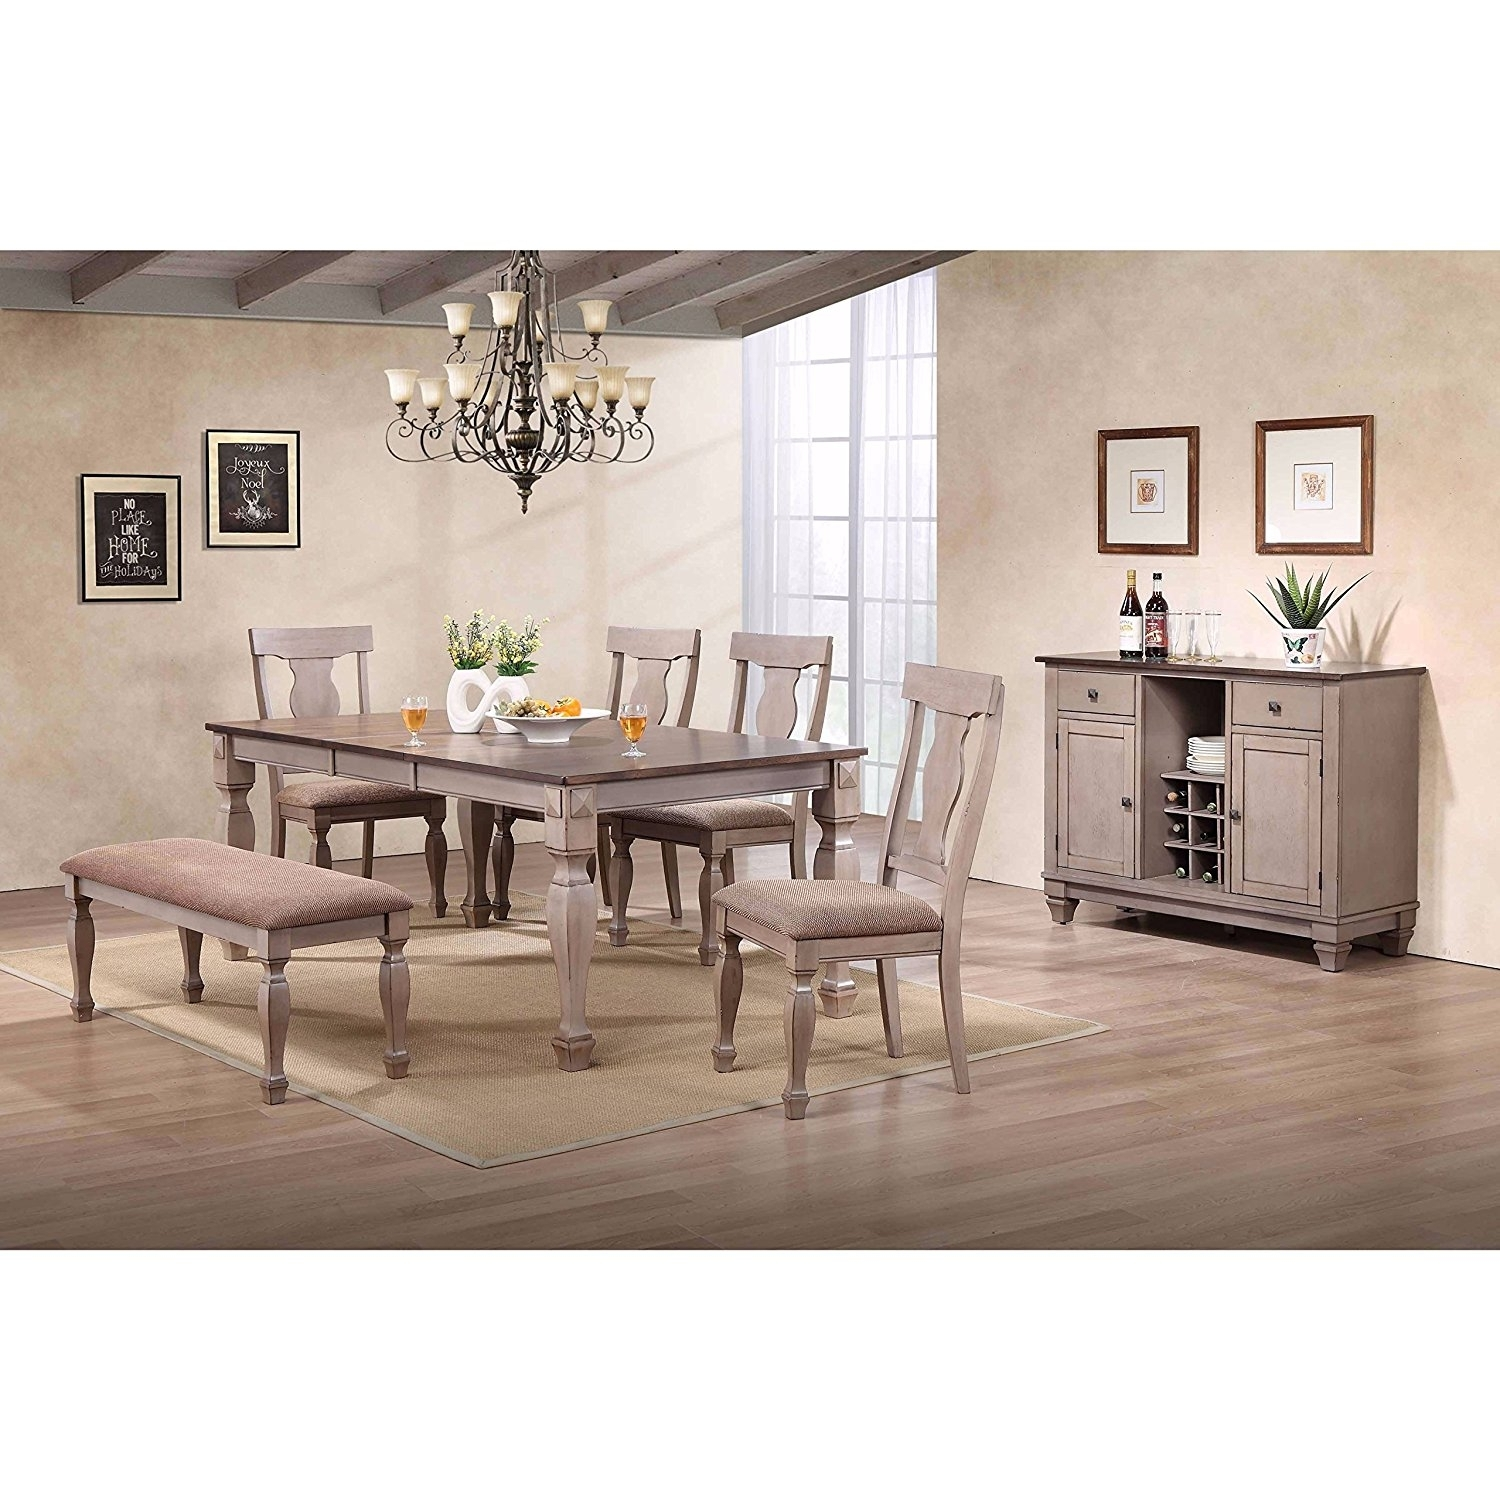 Cheap Two Tone Dining Room, Find Two Tone Dining Room Deals On Line Intended For Latest Candice Ii 5 Piece Round Dining Sets With Slat Back Side Chairs (View 13 of 20)